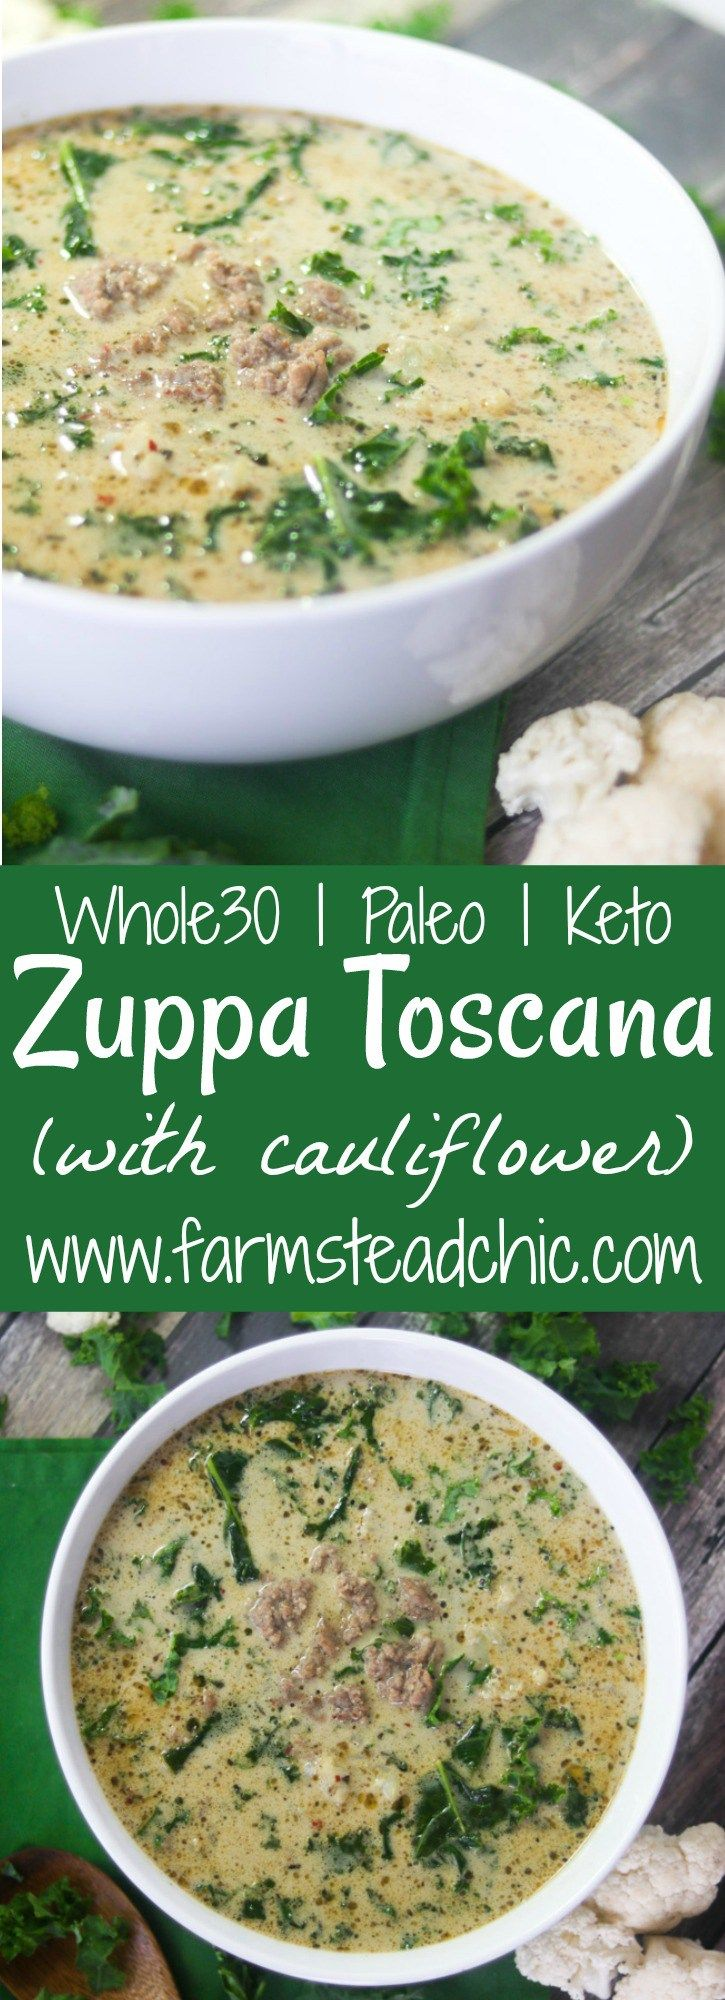 With this Creamy Keto Zuppa Toscana with Cauliflower, you can have your soup, stay low carb + eat it too! Dairy free, gluten free, Whole30, Paleo, low-carb.